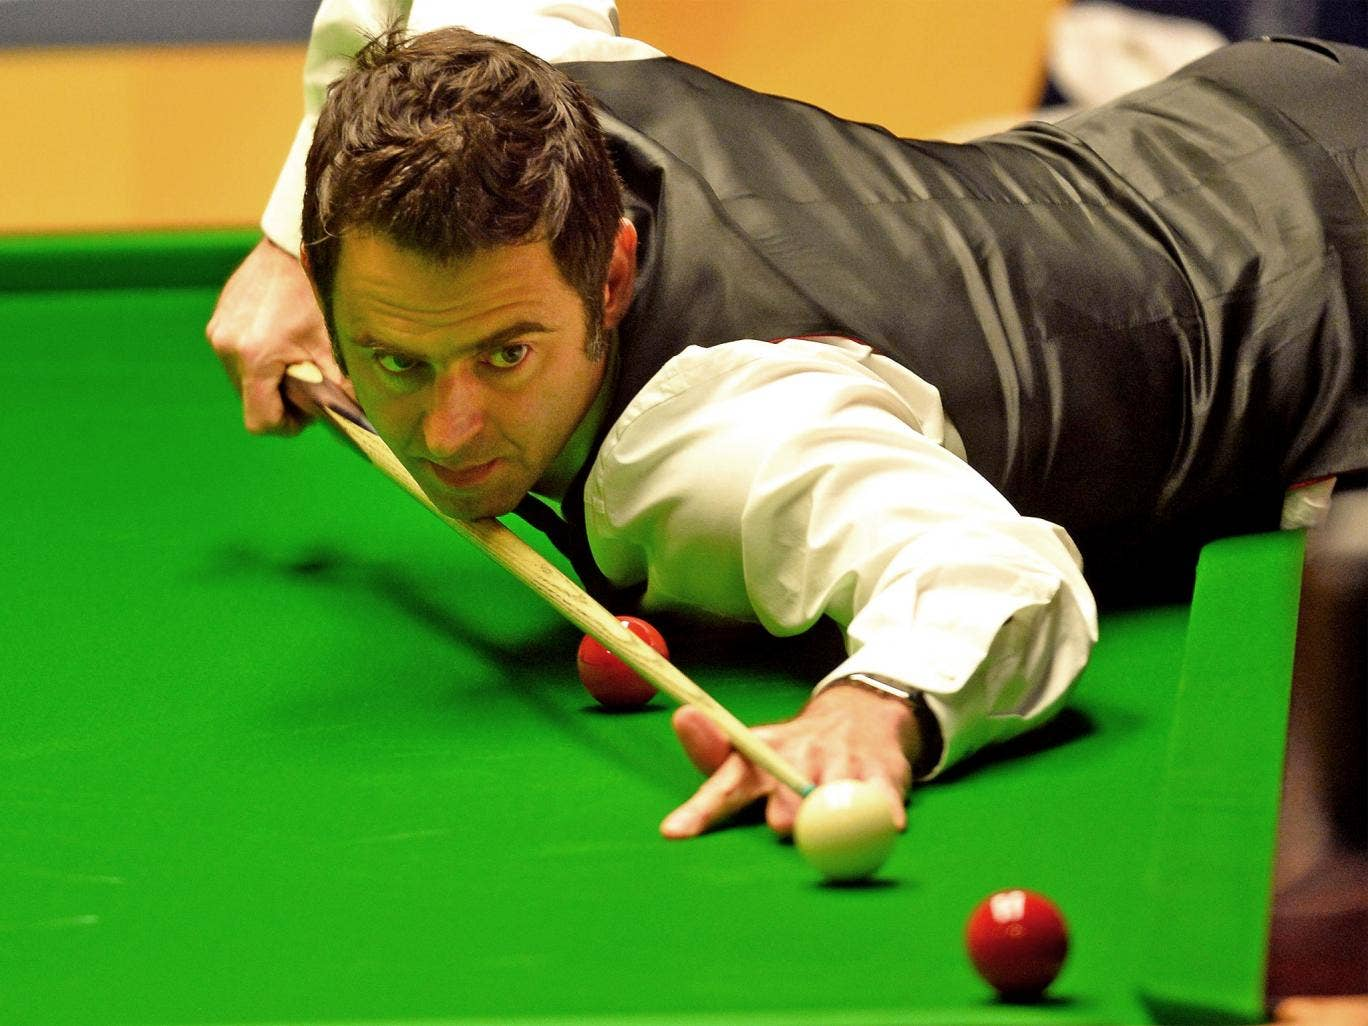 Ronnie O'Sullivan leans over the table to play a shot